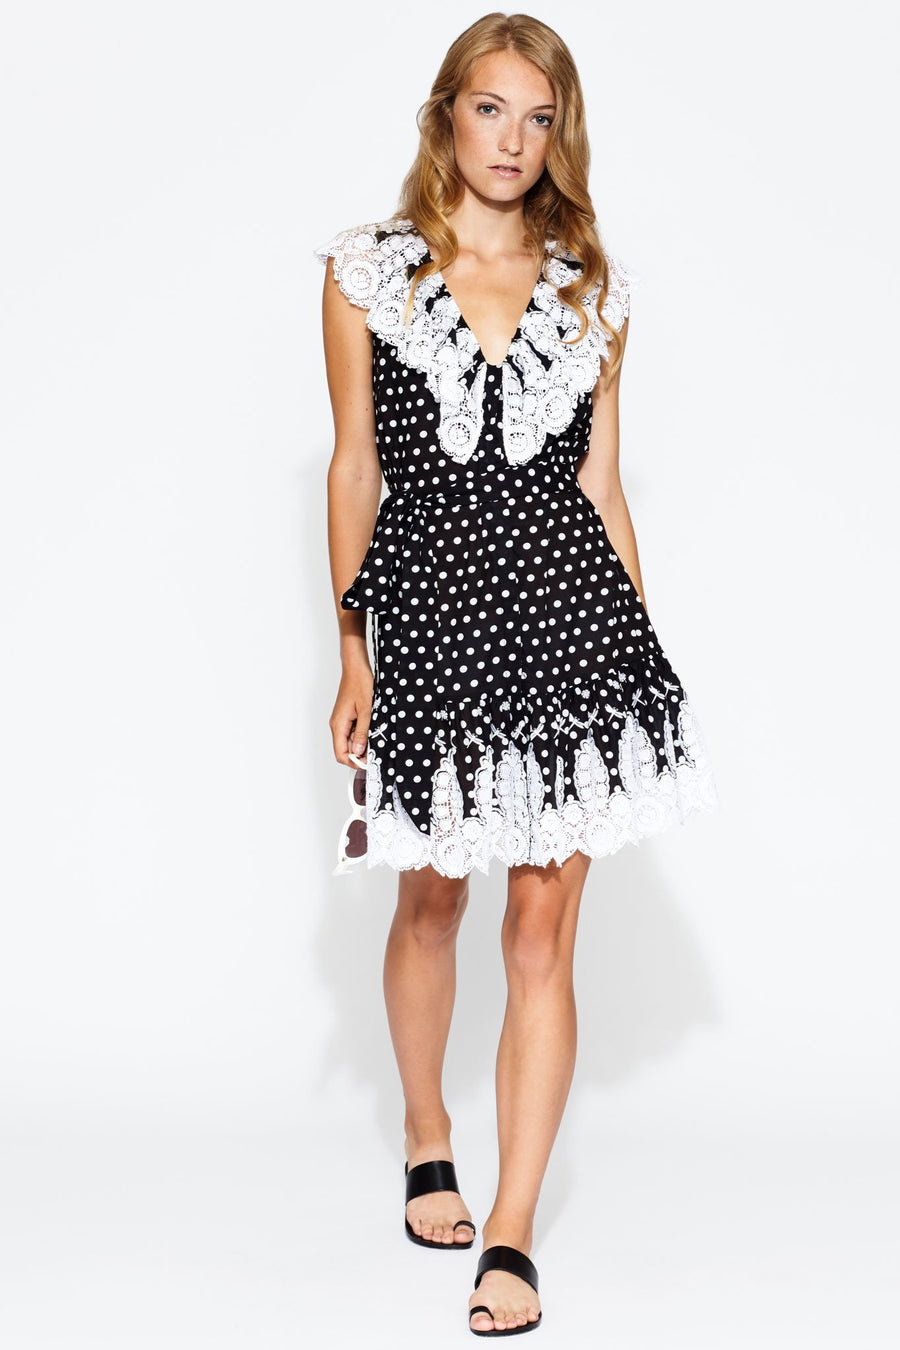 This is a photo of a woman wearing a mini v neck black and white polka dot dress with lace trim on the neckline and bottom hem. It is tied at the waist with a removable black and white polka dot belt.